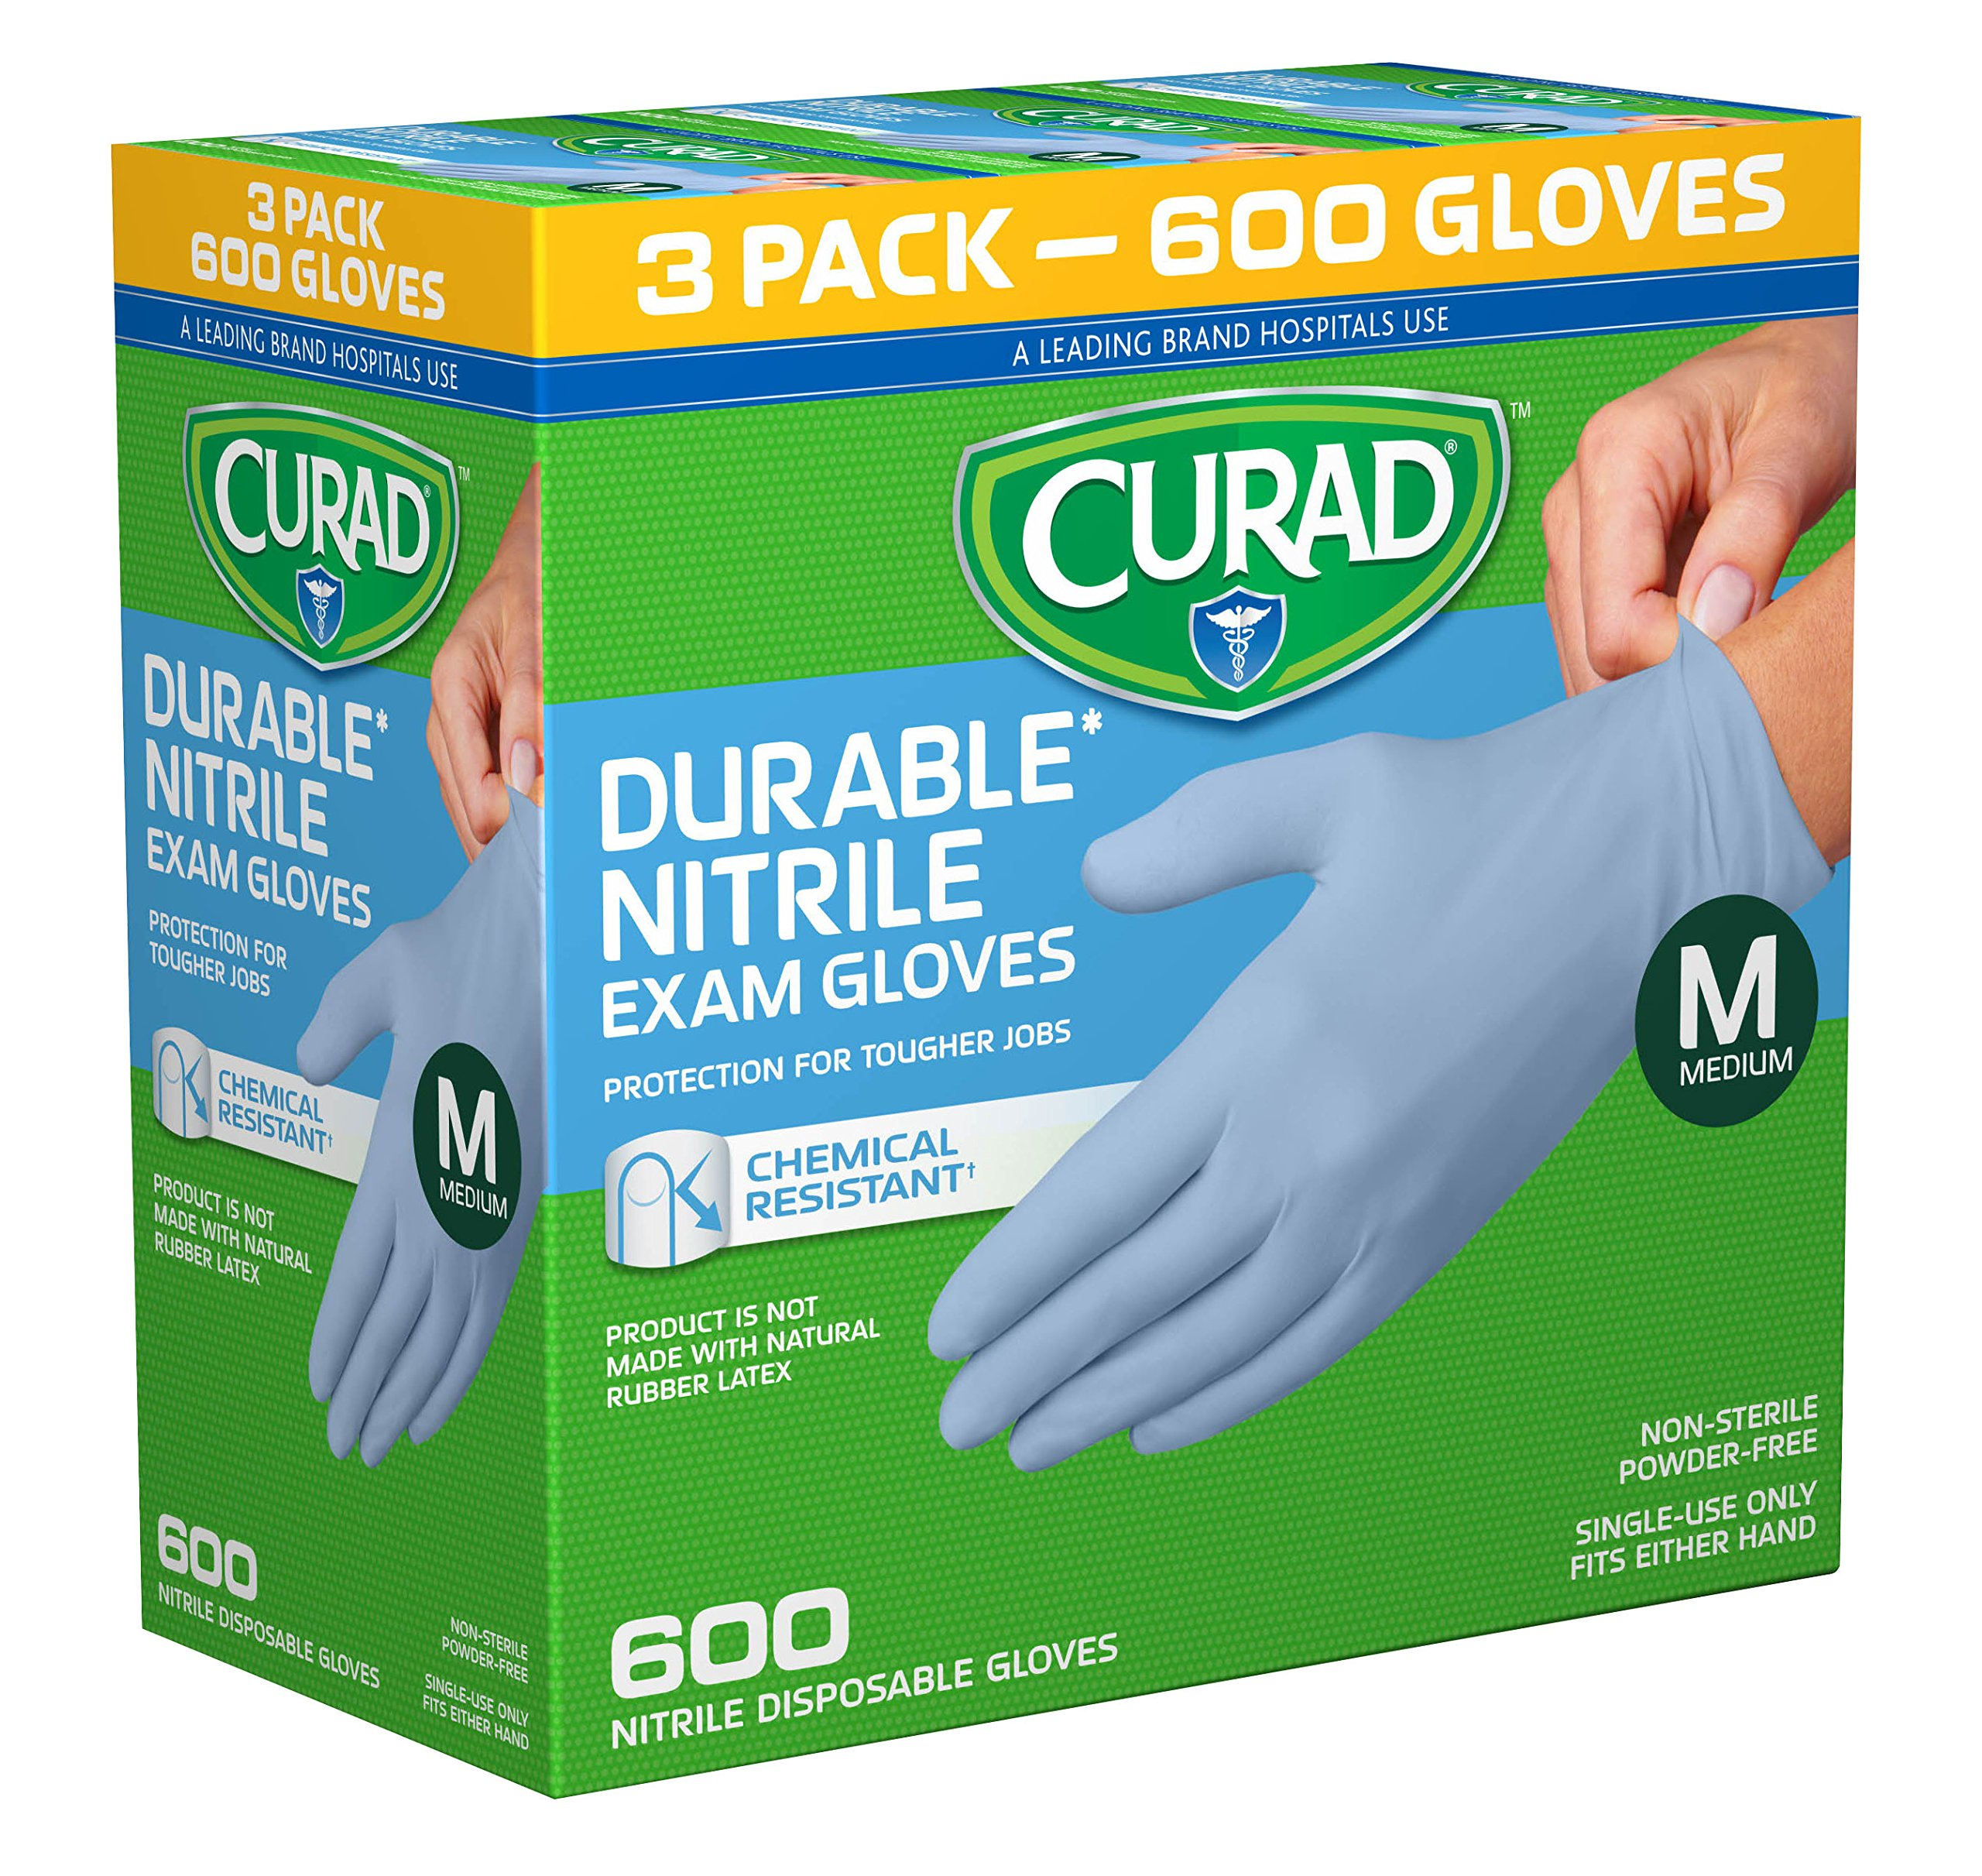 CURAD Disposable Nitrile Exam Gloves, Medium, Blue, (600 Count)